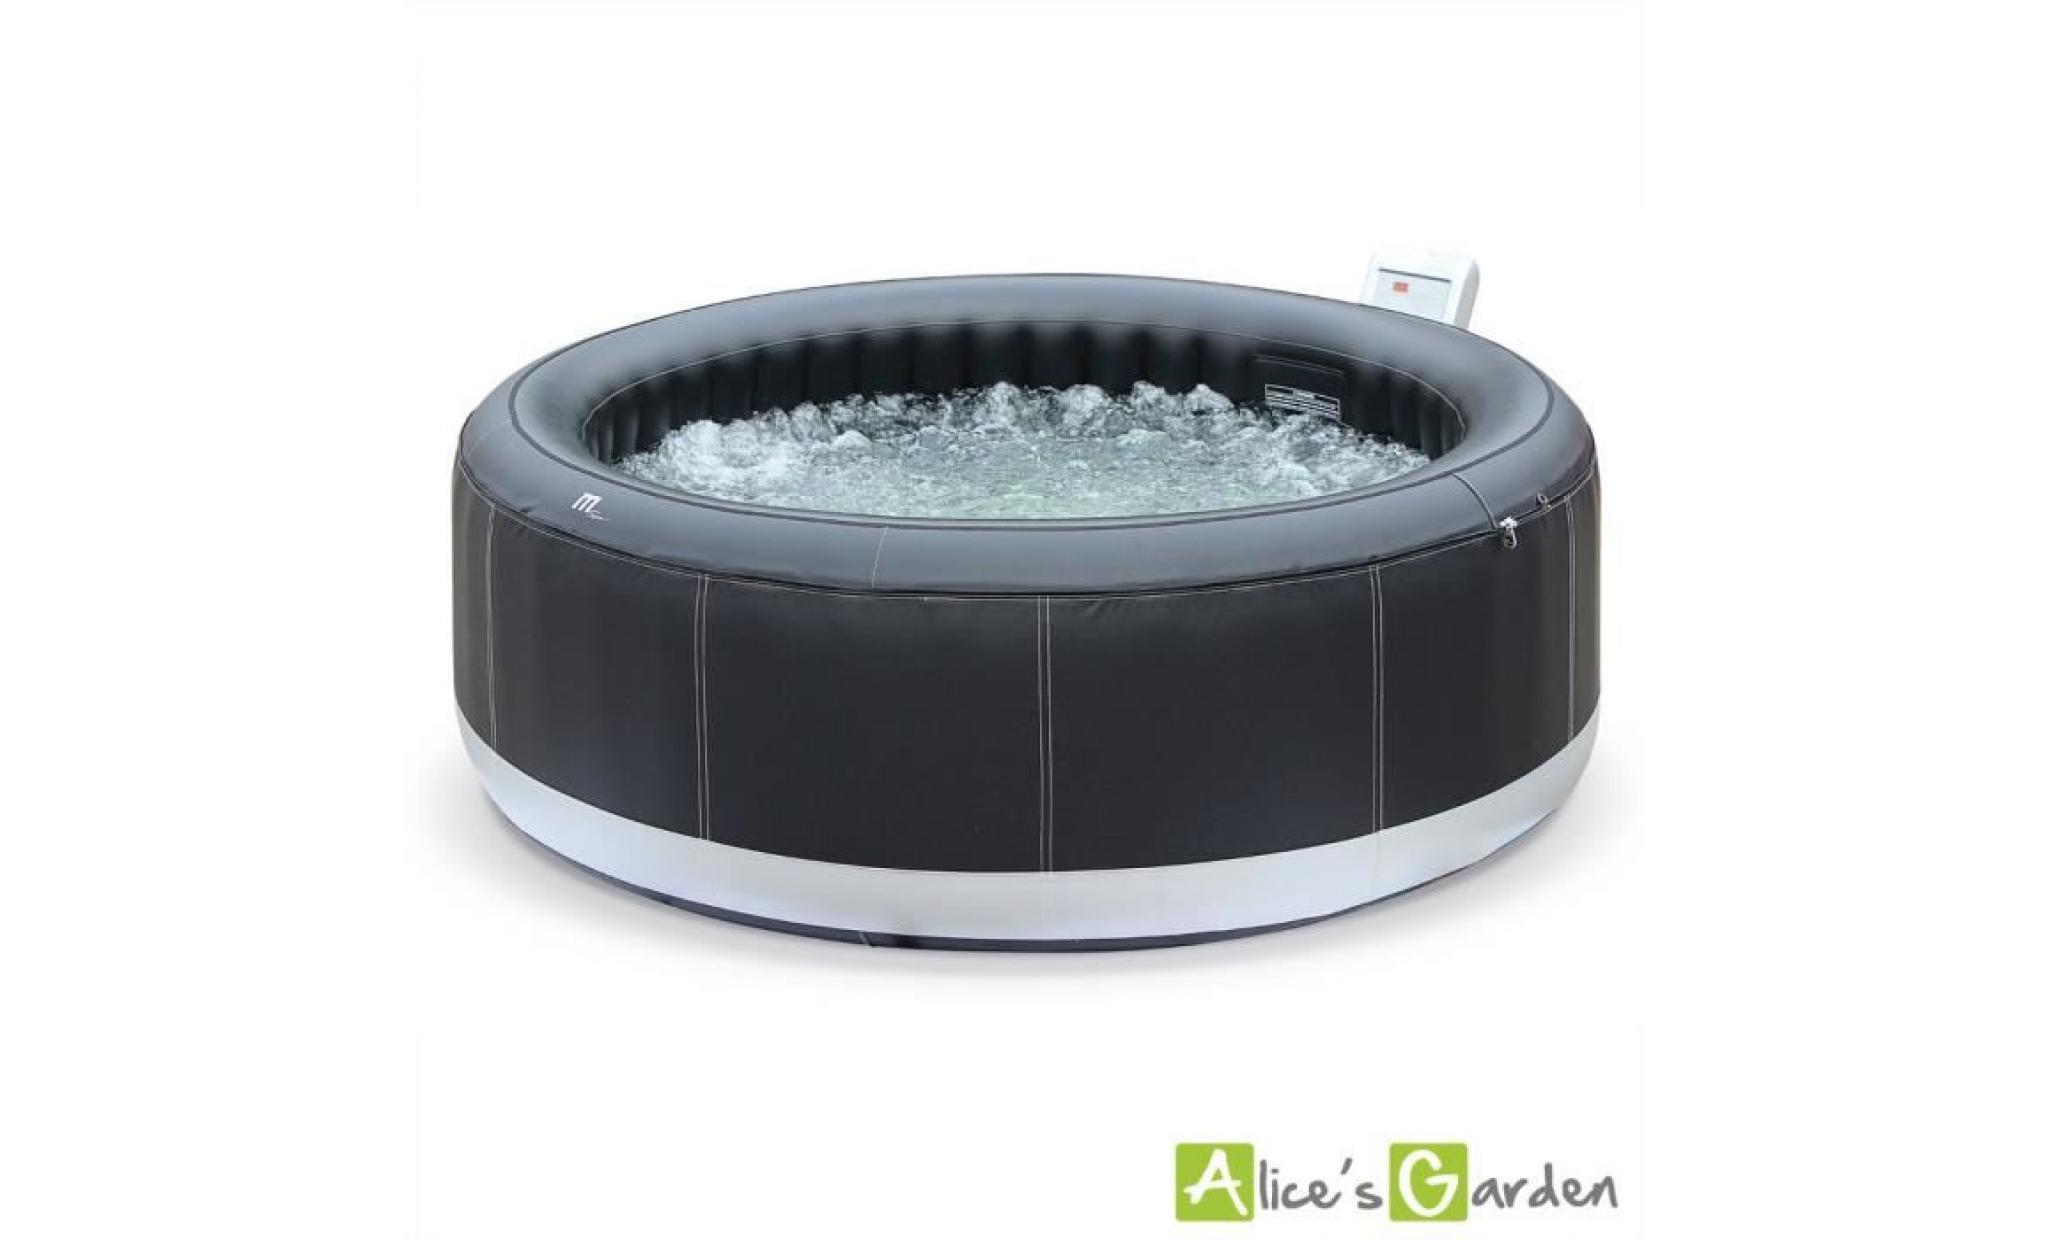 spa gonflable ottawa xxl cuir noir 6 personnes 205cm jacuzzi pu luxe avec pompe int gr e. Black Bedroom Furniture Sets. Home Design Ideas